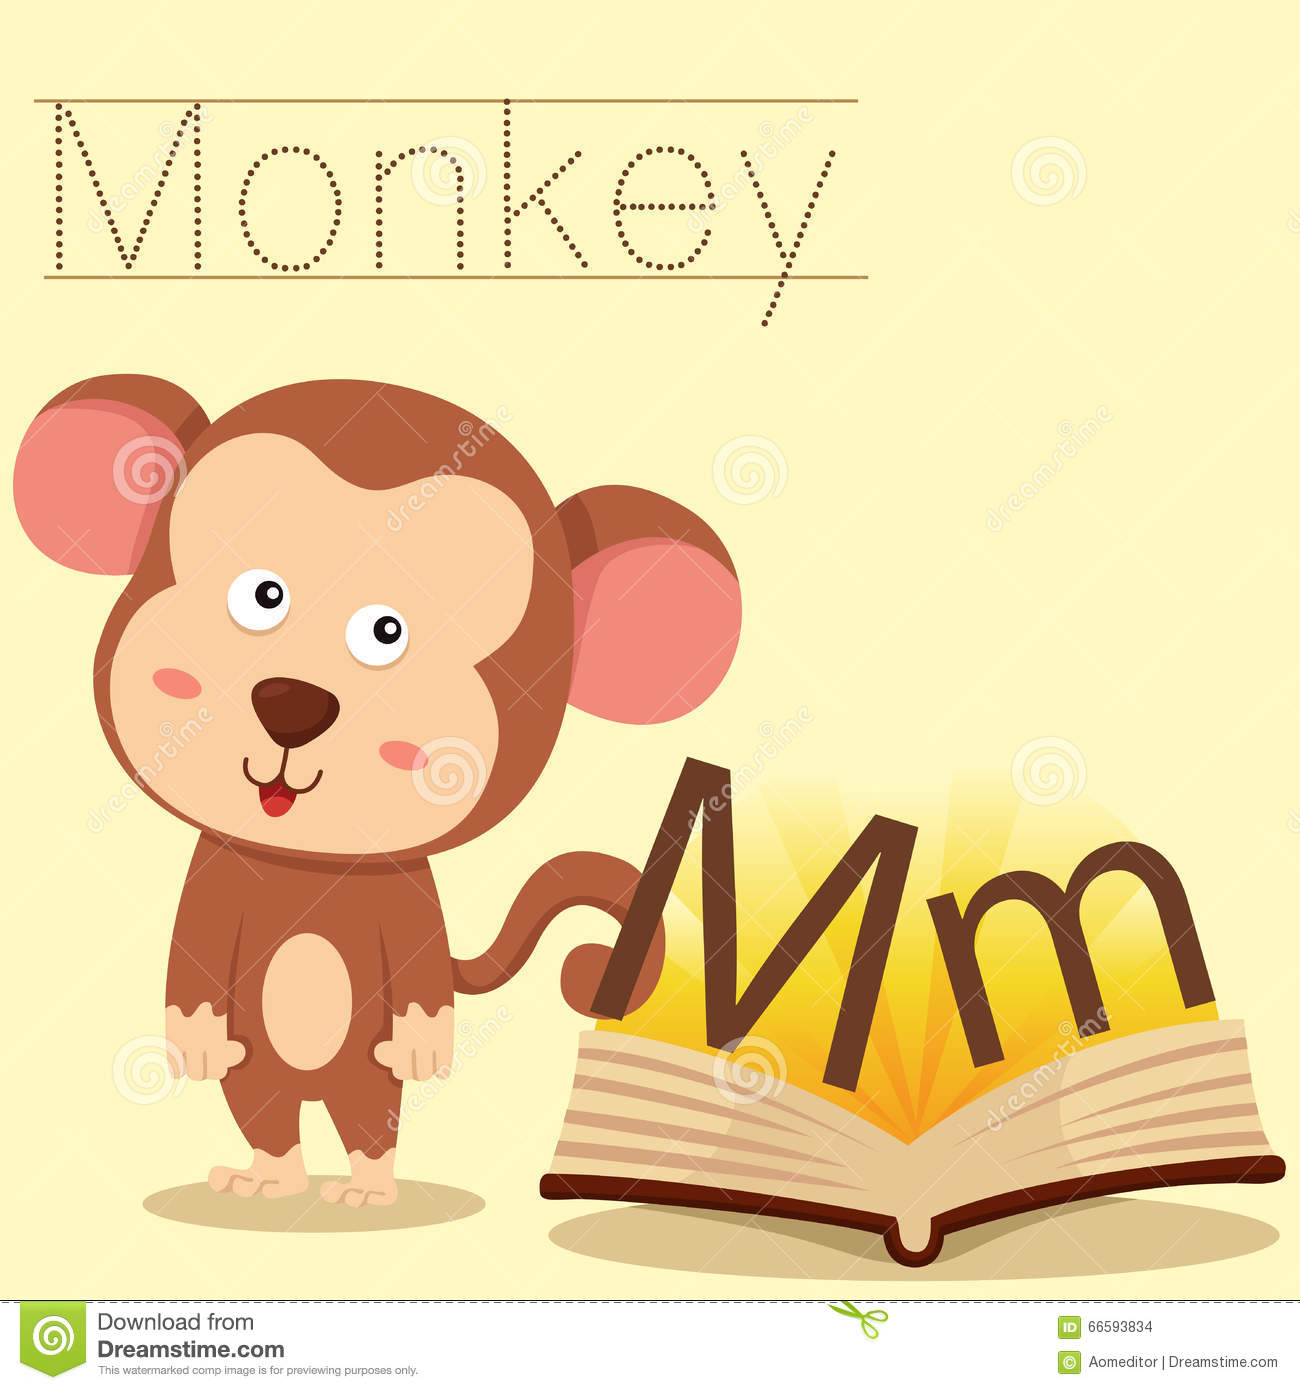 Illustrator Of M For Monkey Vocabulary Stock Vector